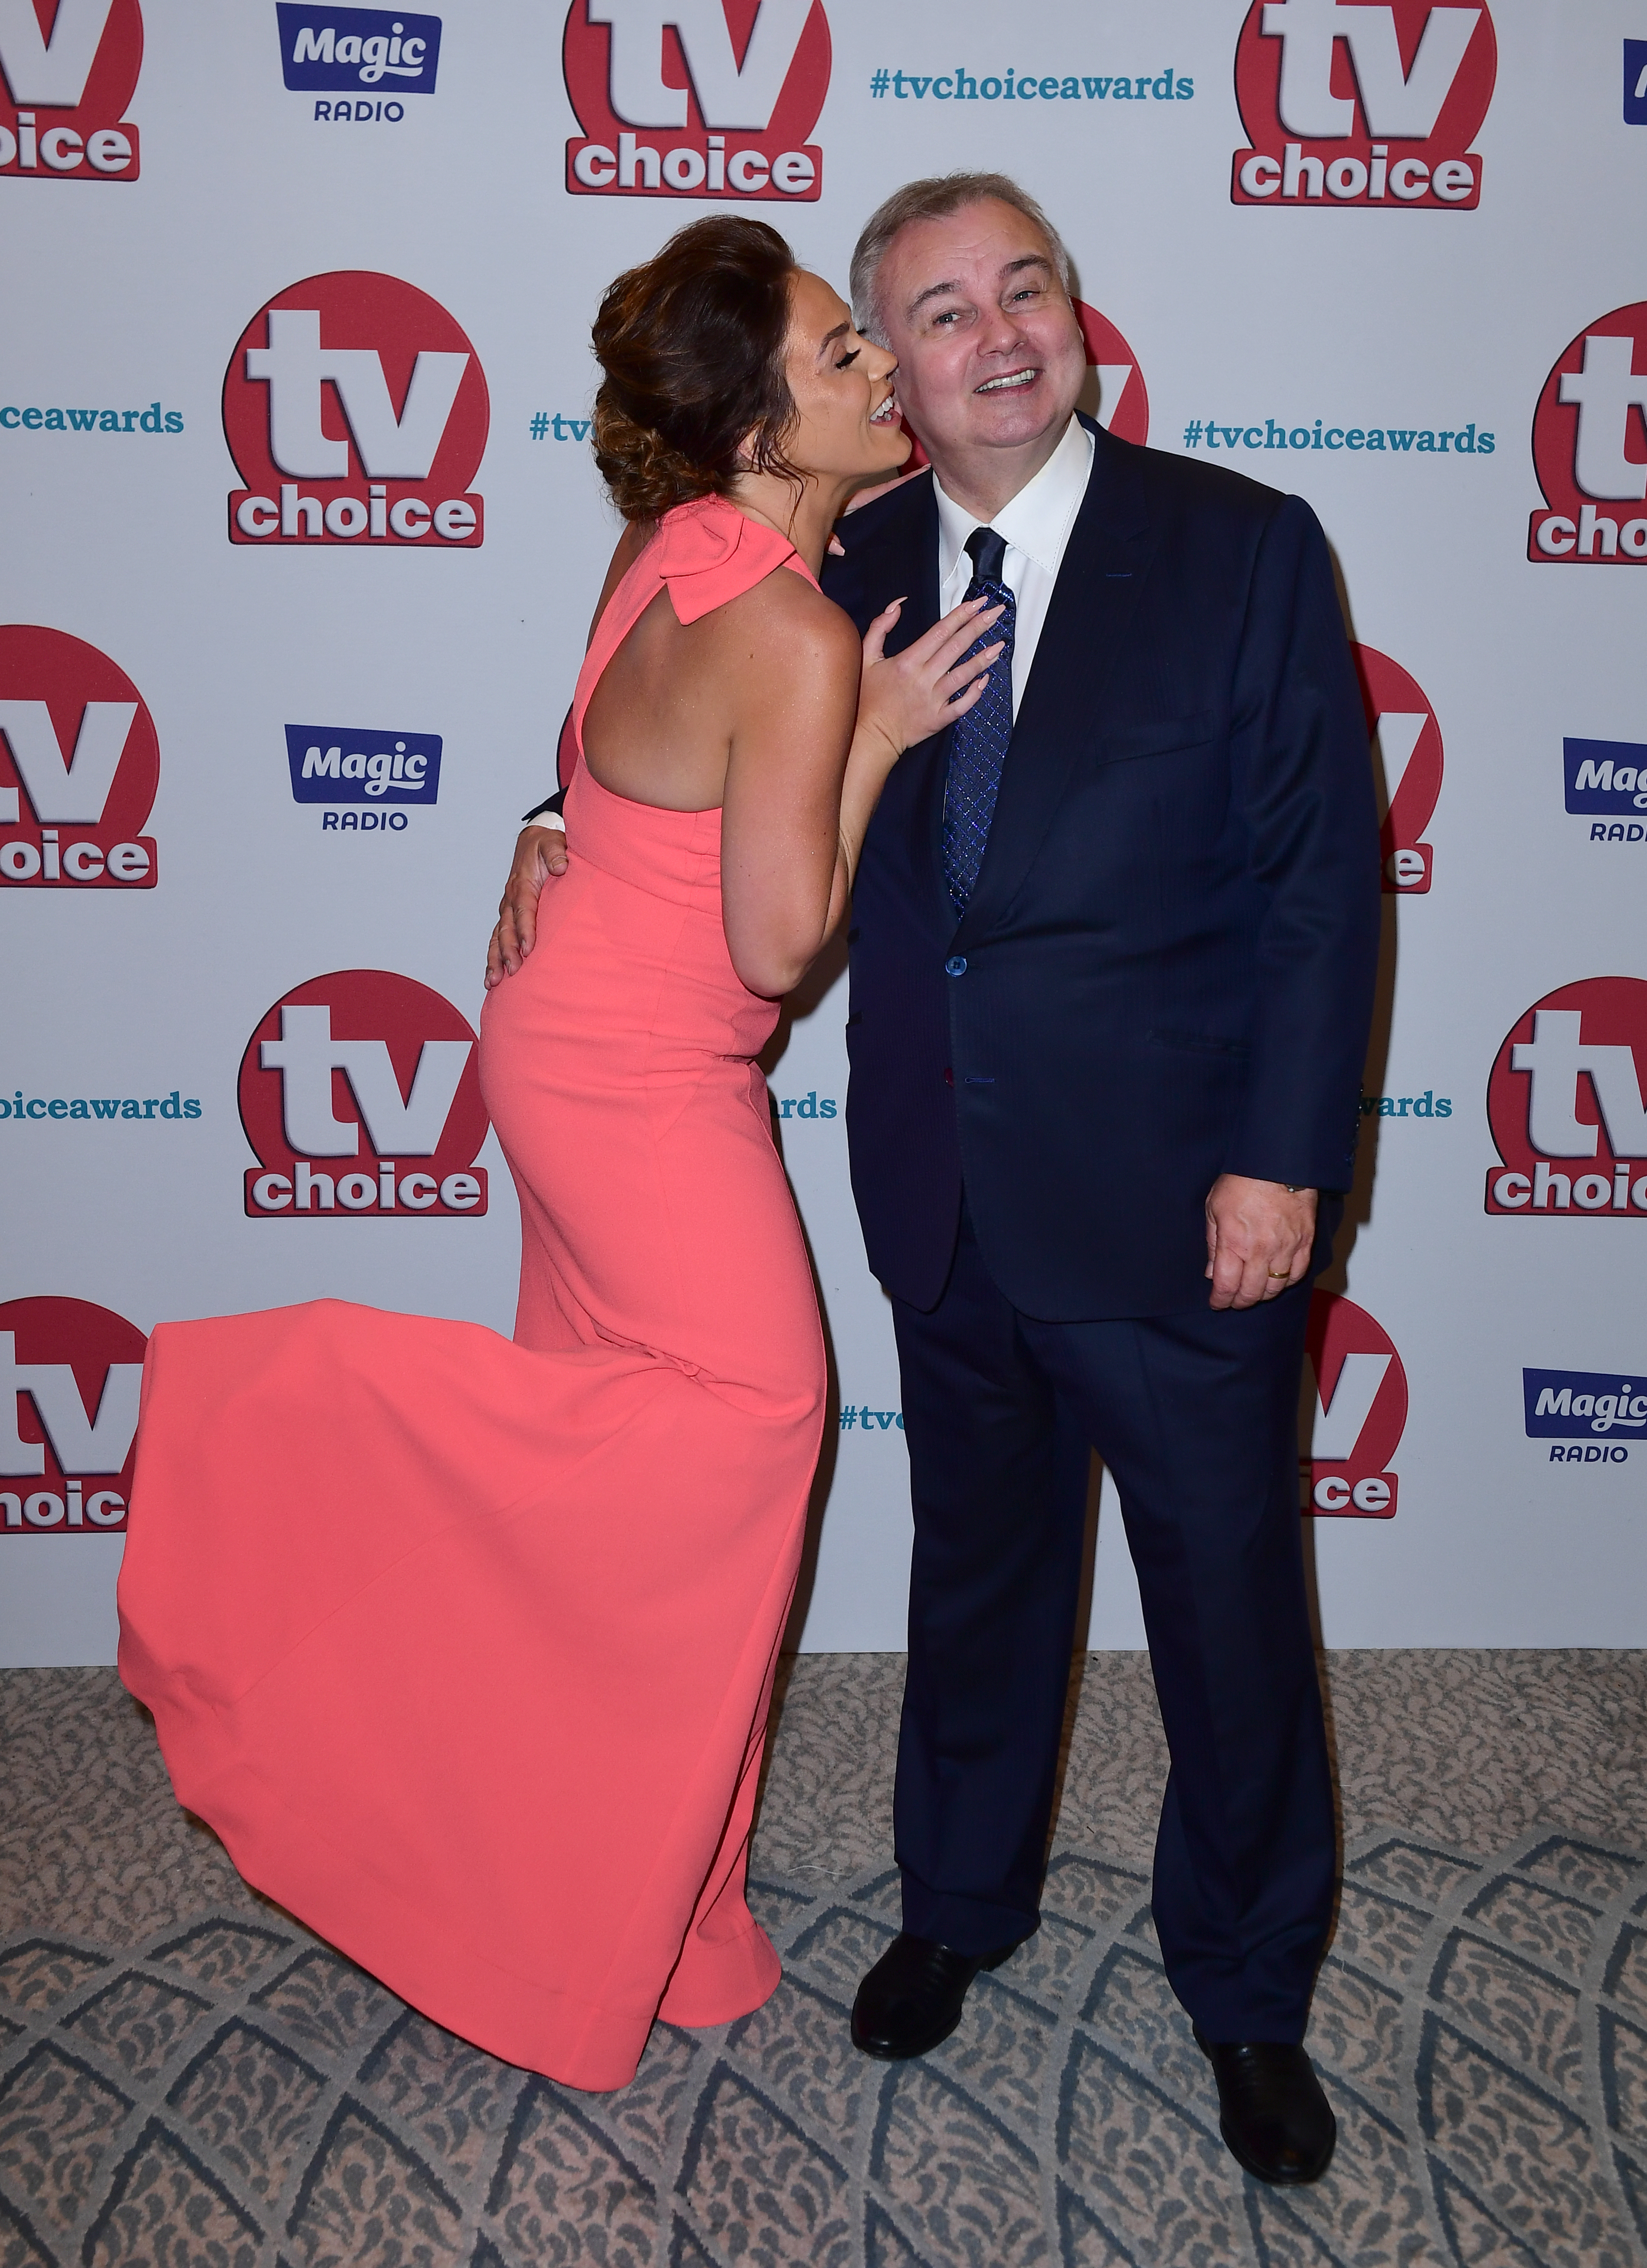 Vicky Pattison and Eamonn Holmes